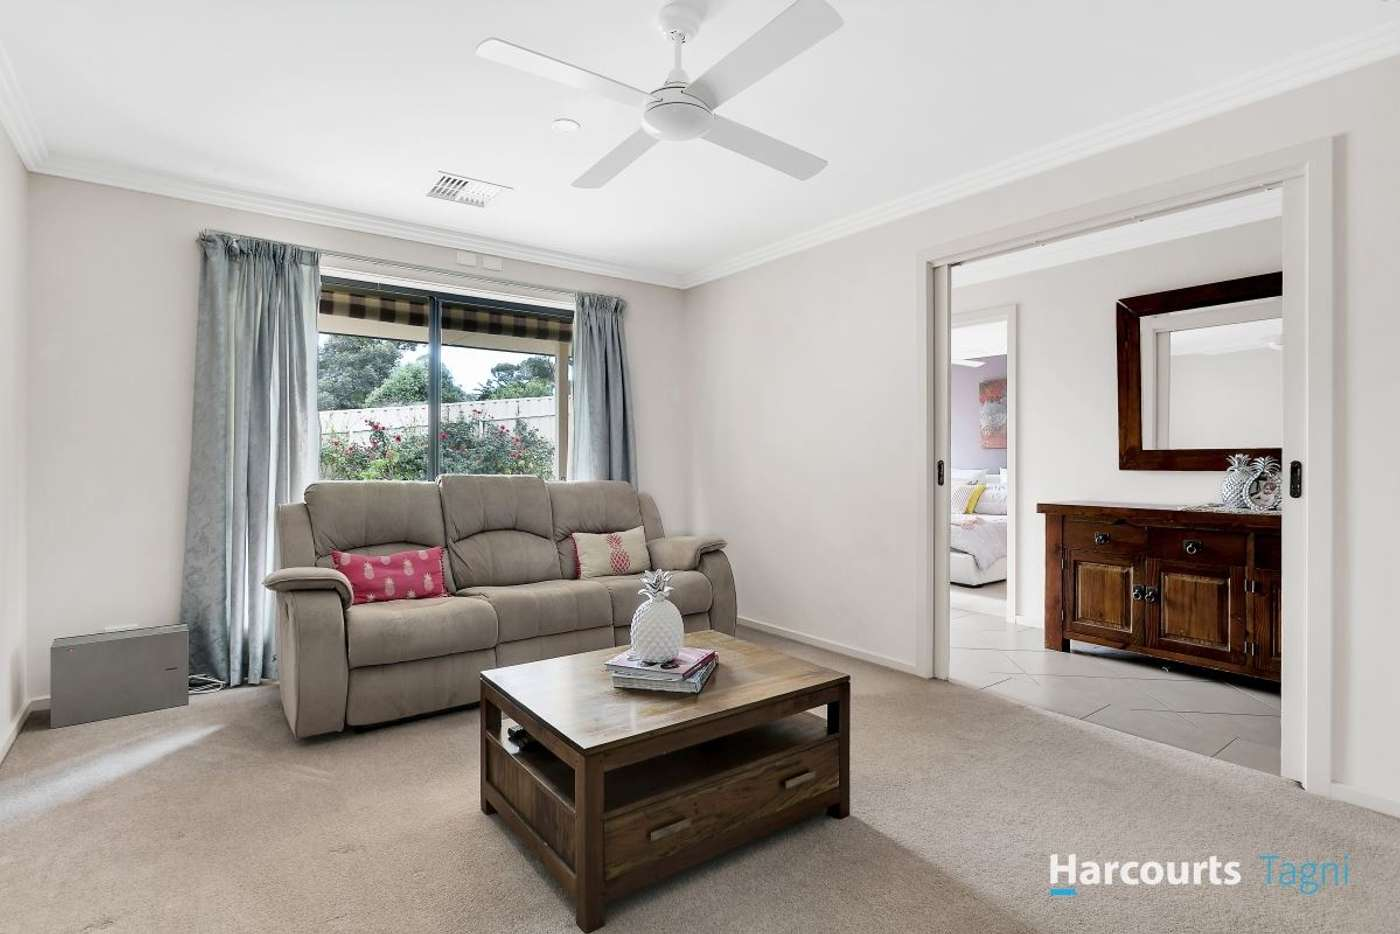 Fifth view of Homely house listing, 51 Nickel Drive, Aberfoyle Park SA 5159